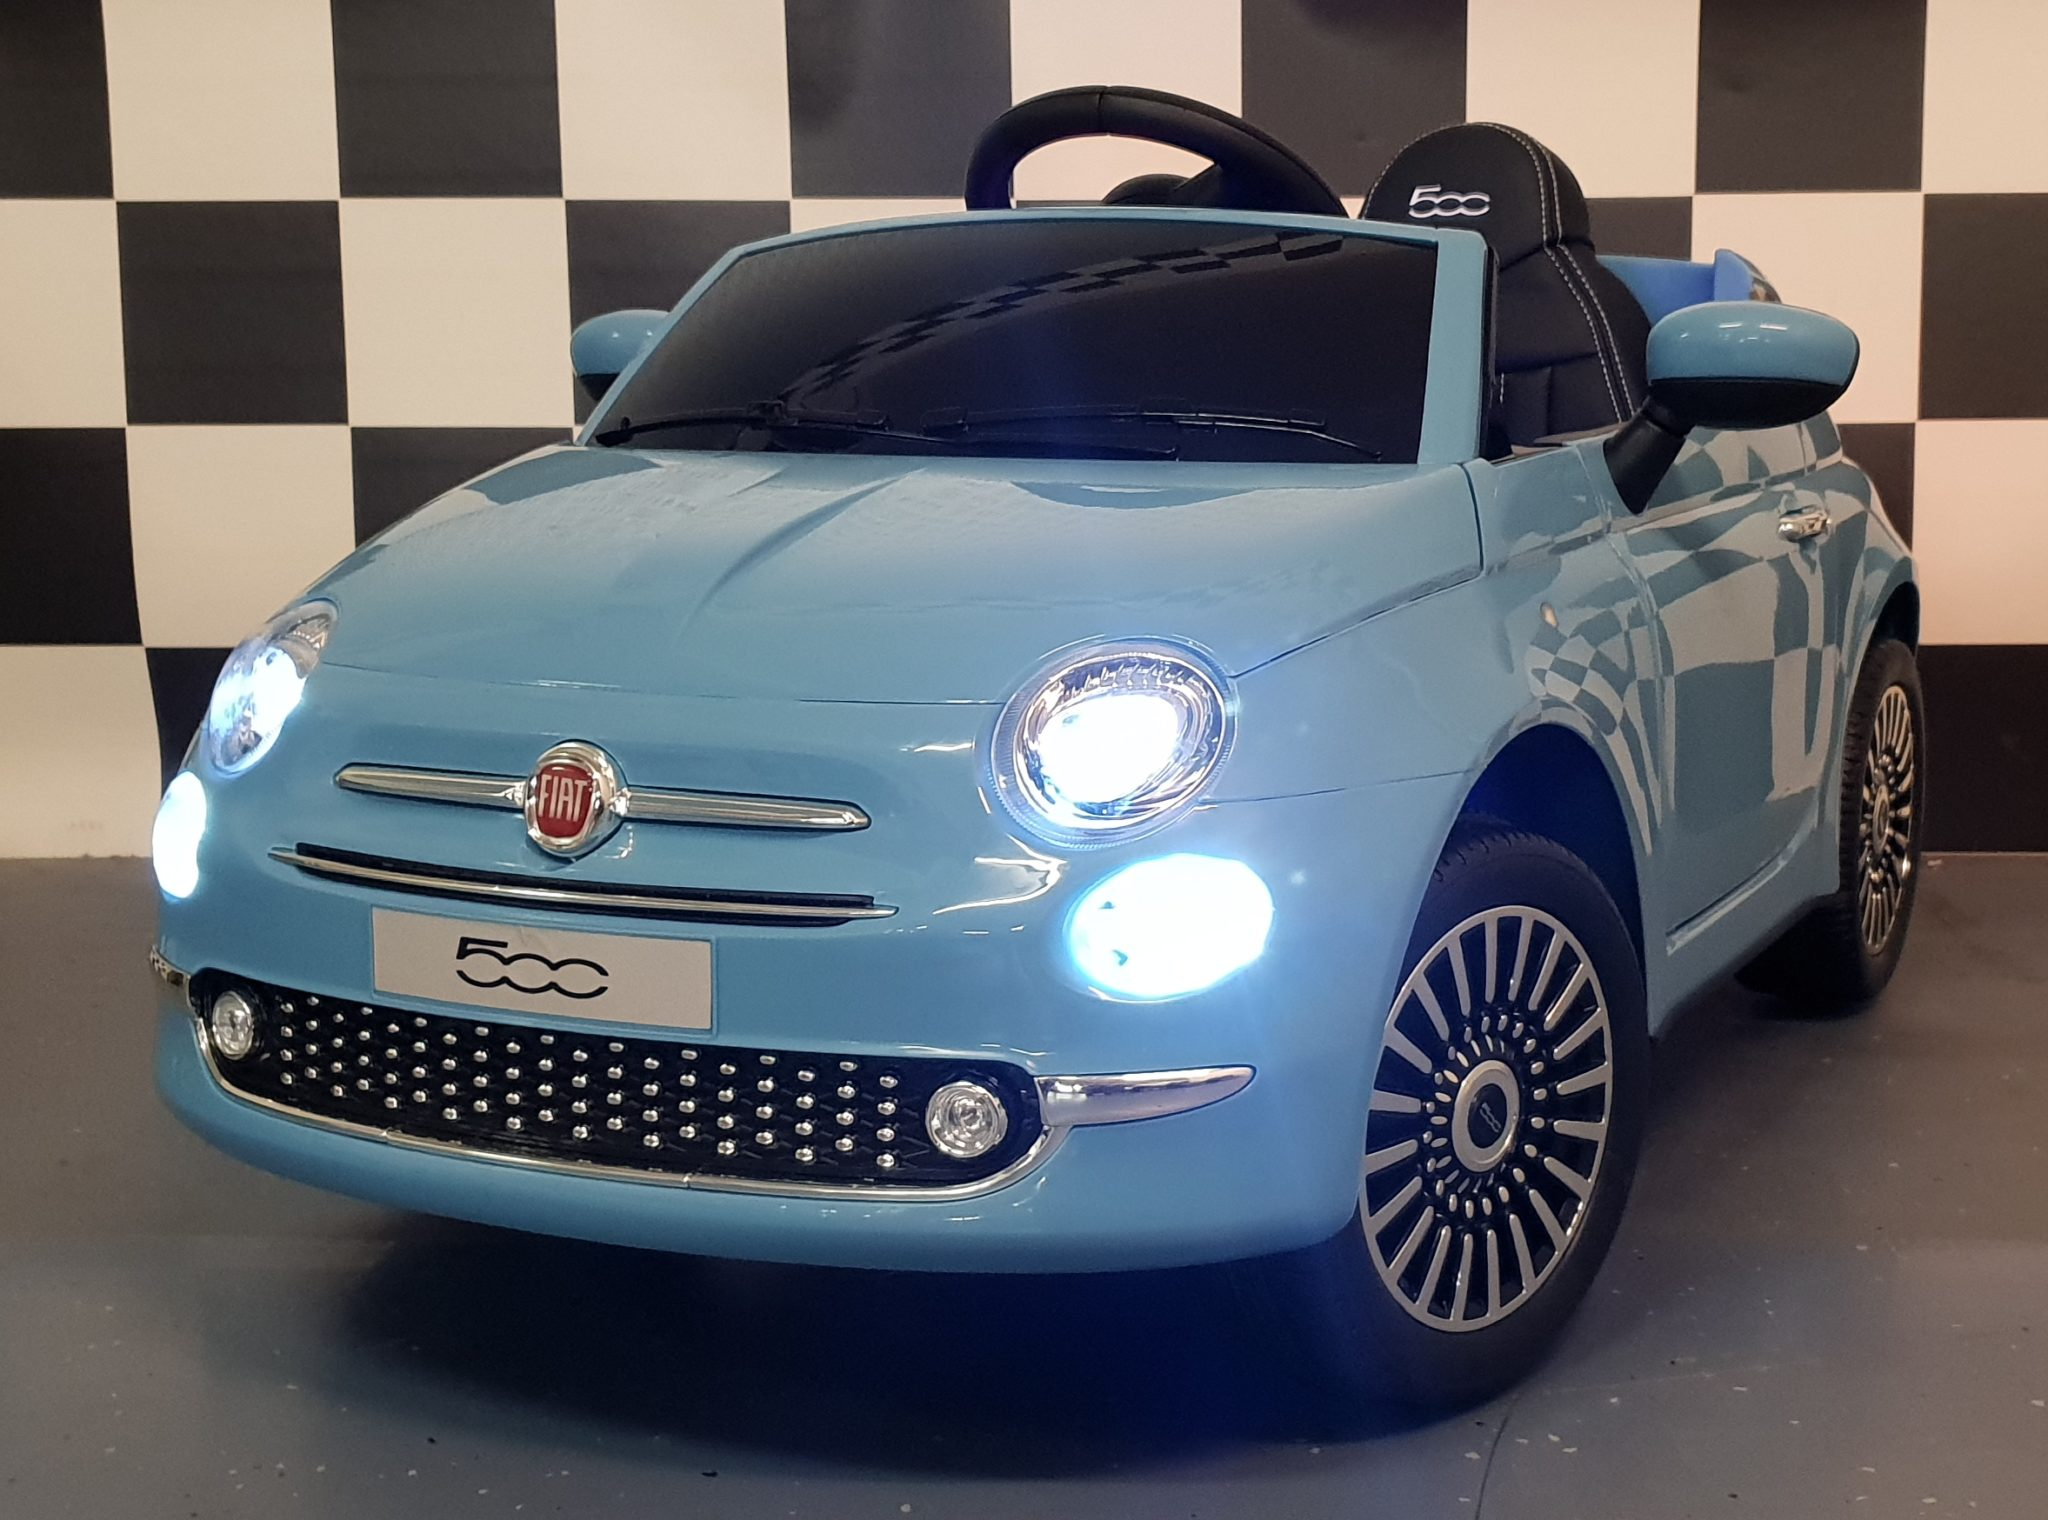 elektrische accu kinder auto fiat 500 met afstandbediening. Black Bedroom Furniture Sets. Home Design Ideas